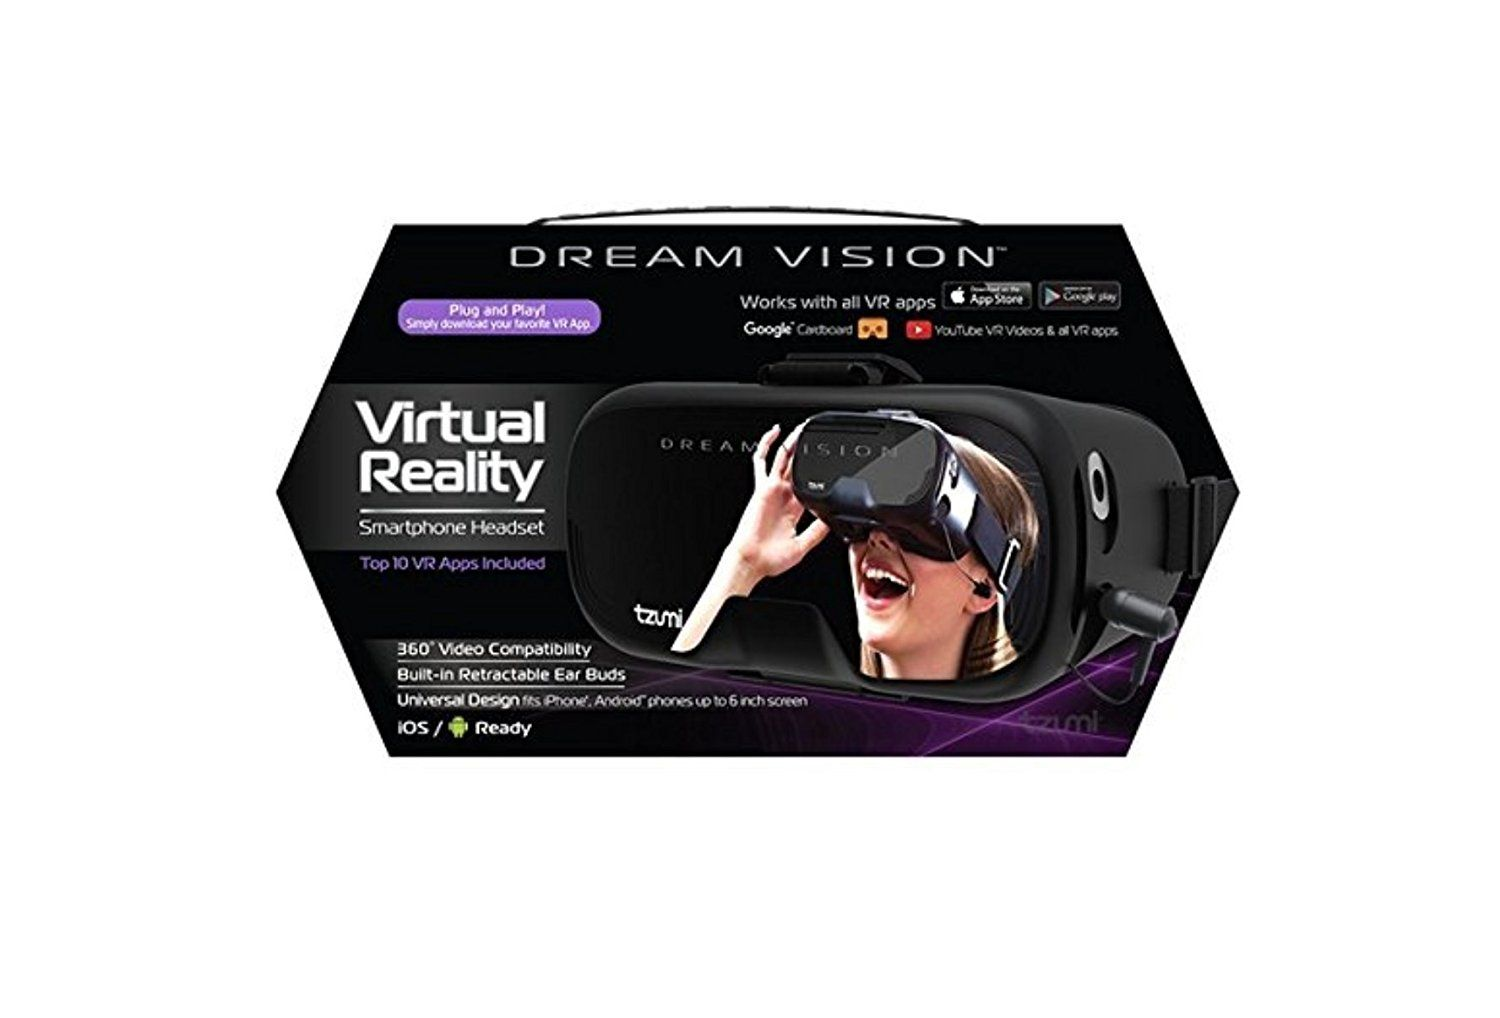 1d0e23112ad Dream Vision Virtual Reality Smartphone Headset For iPhone And Android  Phones Up To Six Inches. Top Ten VR Apps Included     For more information